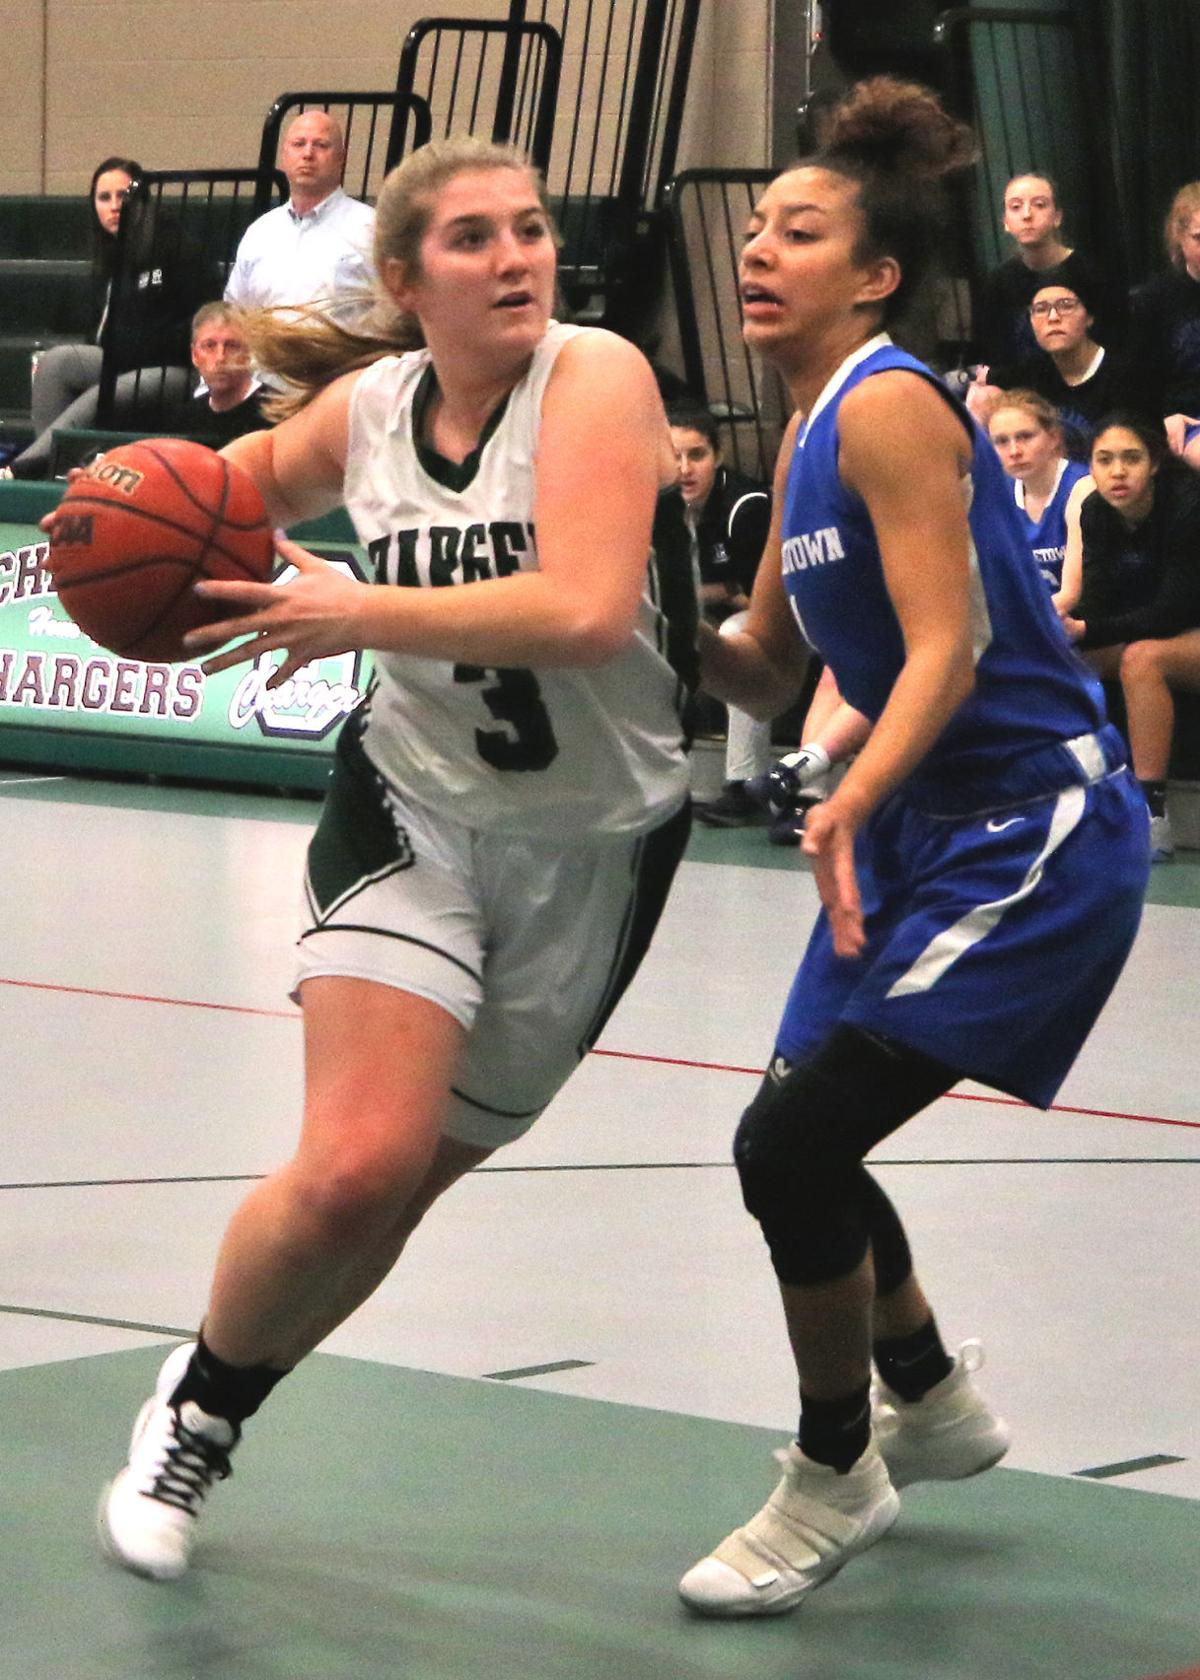 Kate Powers (3) drives around Middletown's Isabella Wiggins (1) in the Chariho vs Middletown girls' varsity basketball game played Tuesday evening, January 21, 2020, at Chariho High School, Wood River Jct., RI. | Jackie L. Turner, Special to The Sun.